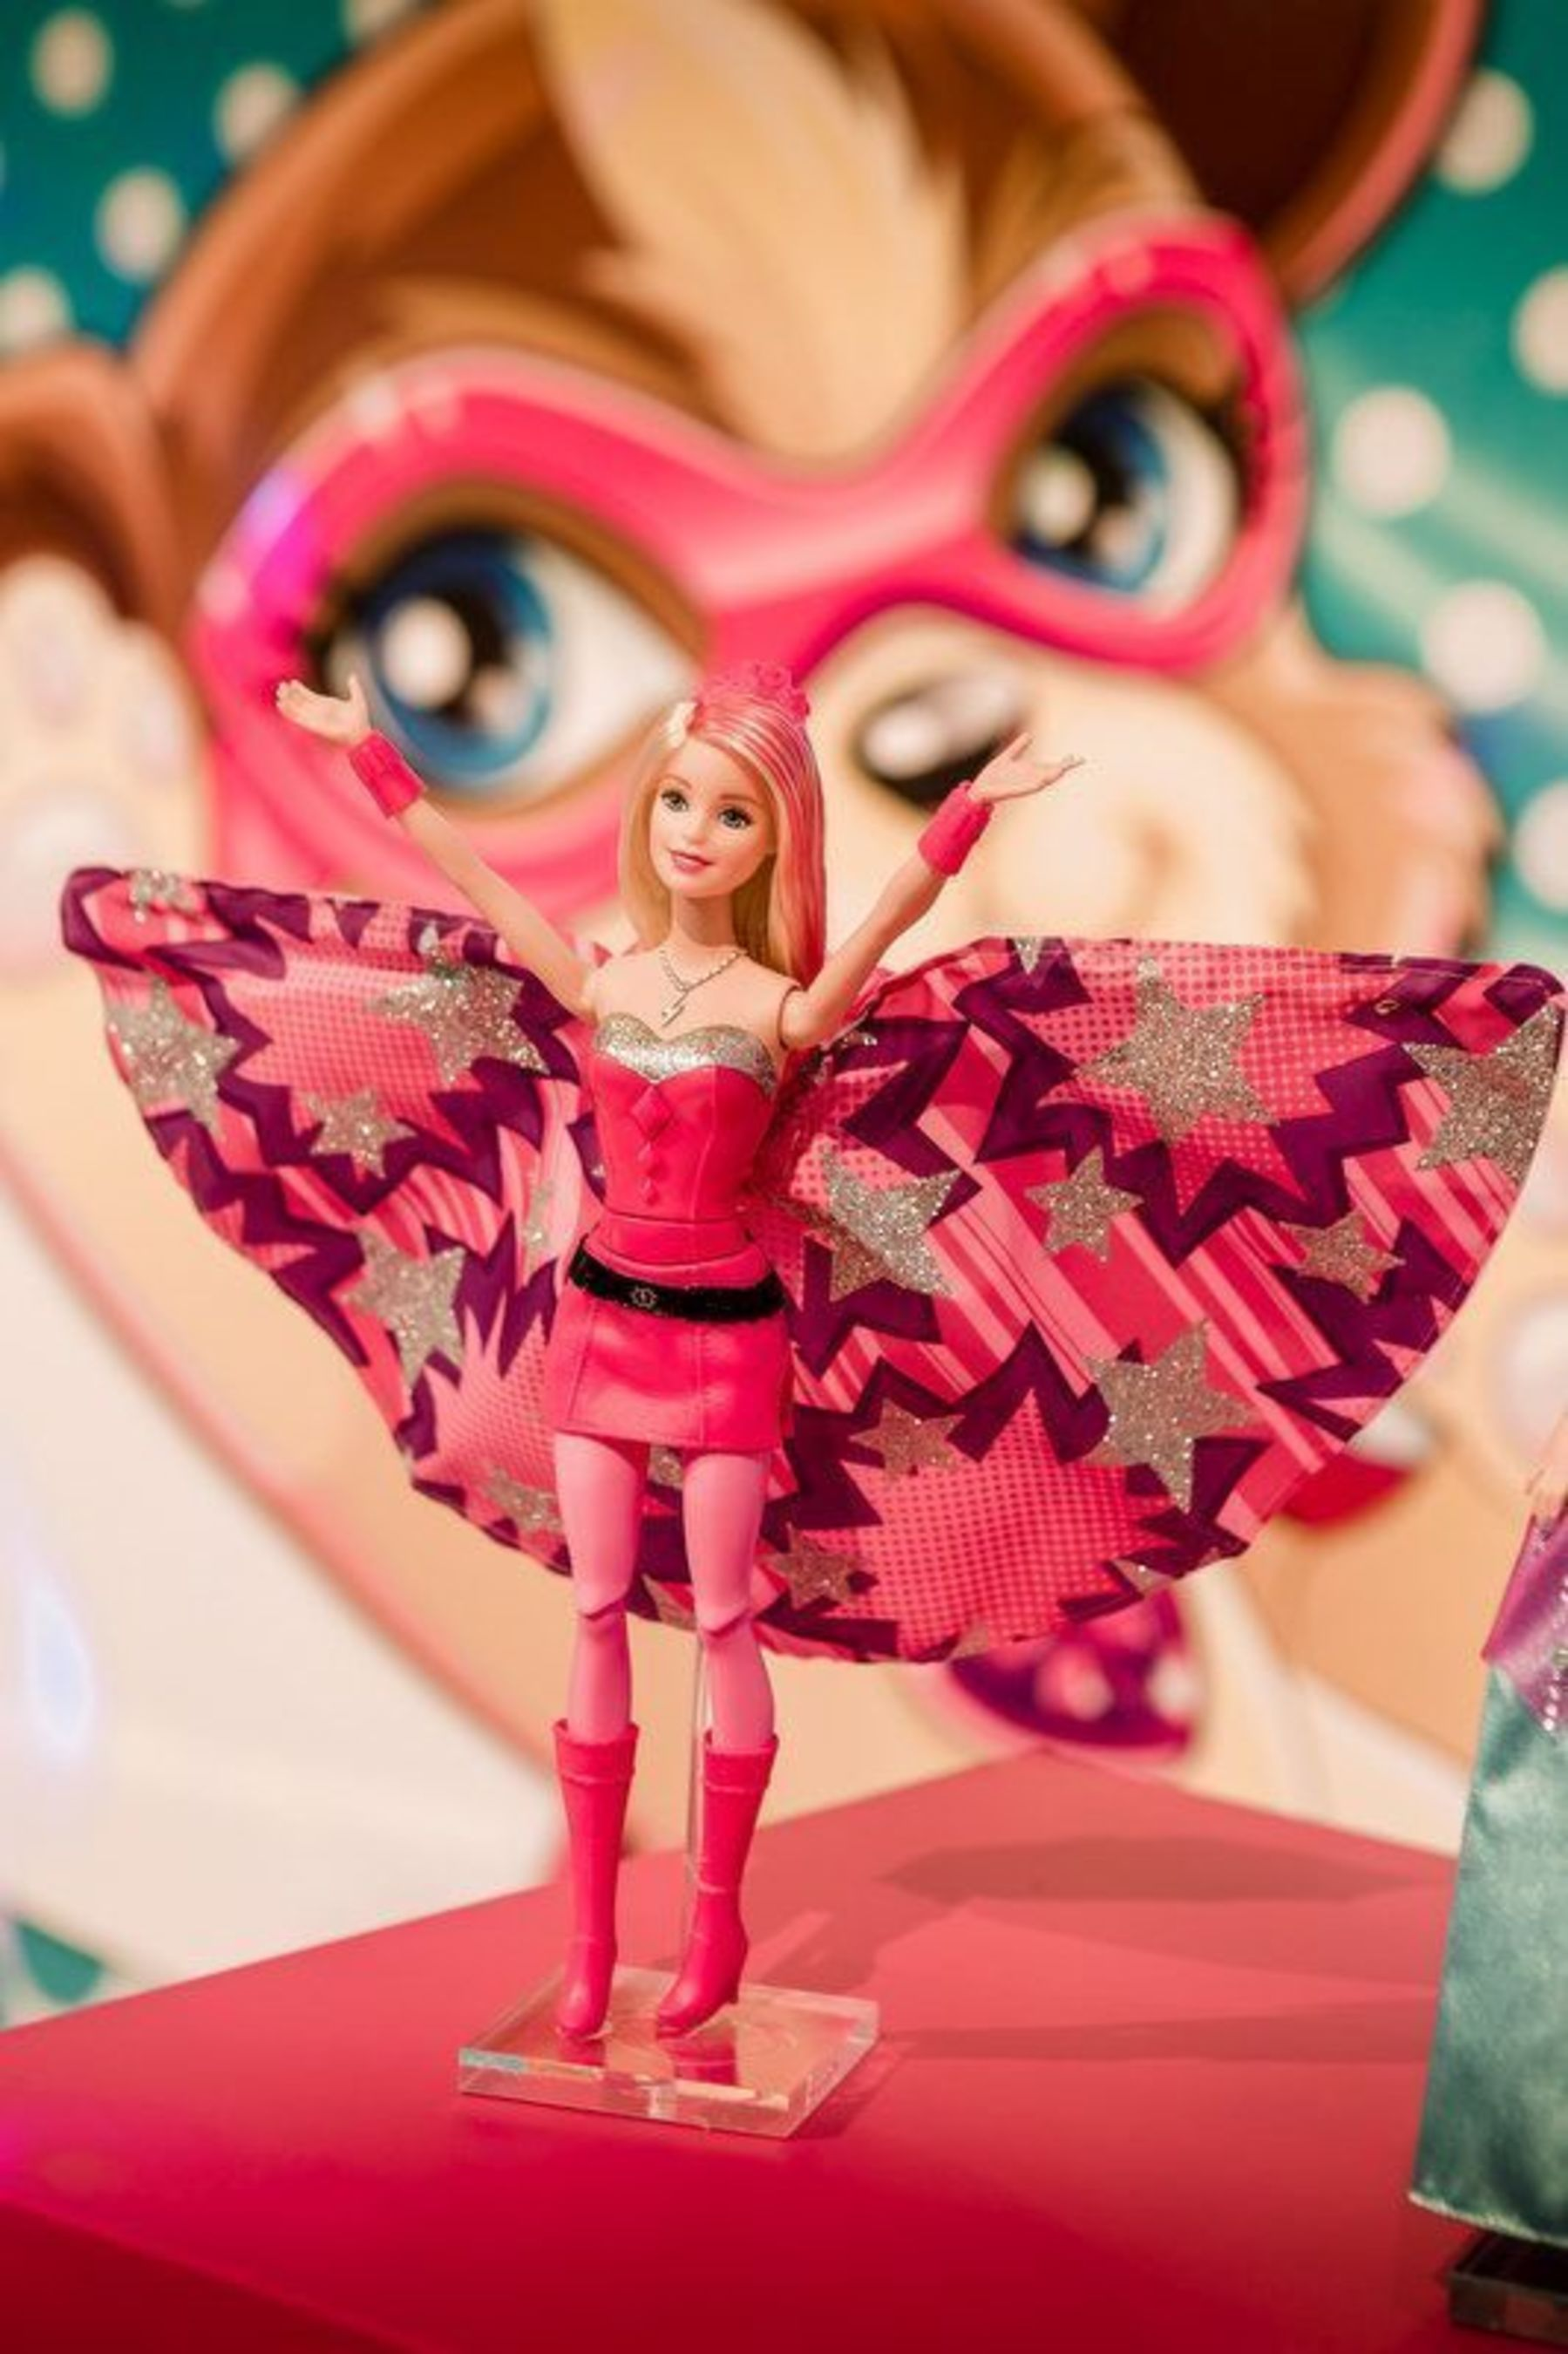 """For the First Time in History, Barbie(TM) Makes Superhero Debut with """"Barbie(TM) in Princess Power"""" at Nuremberg Toy Fair 2015 (PRNewsFoto/Mattel)"""